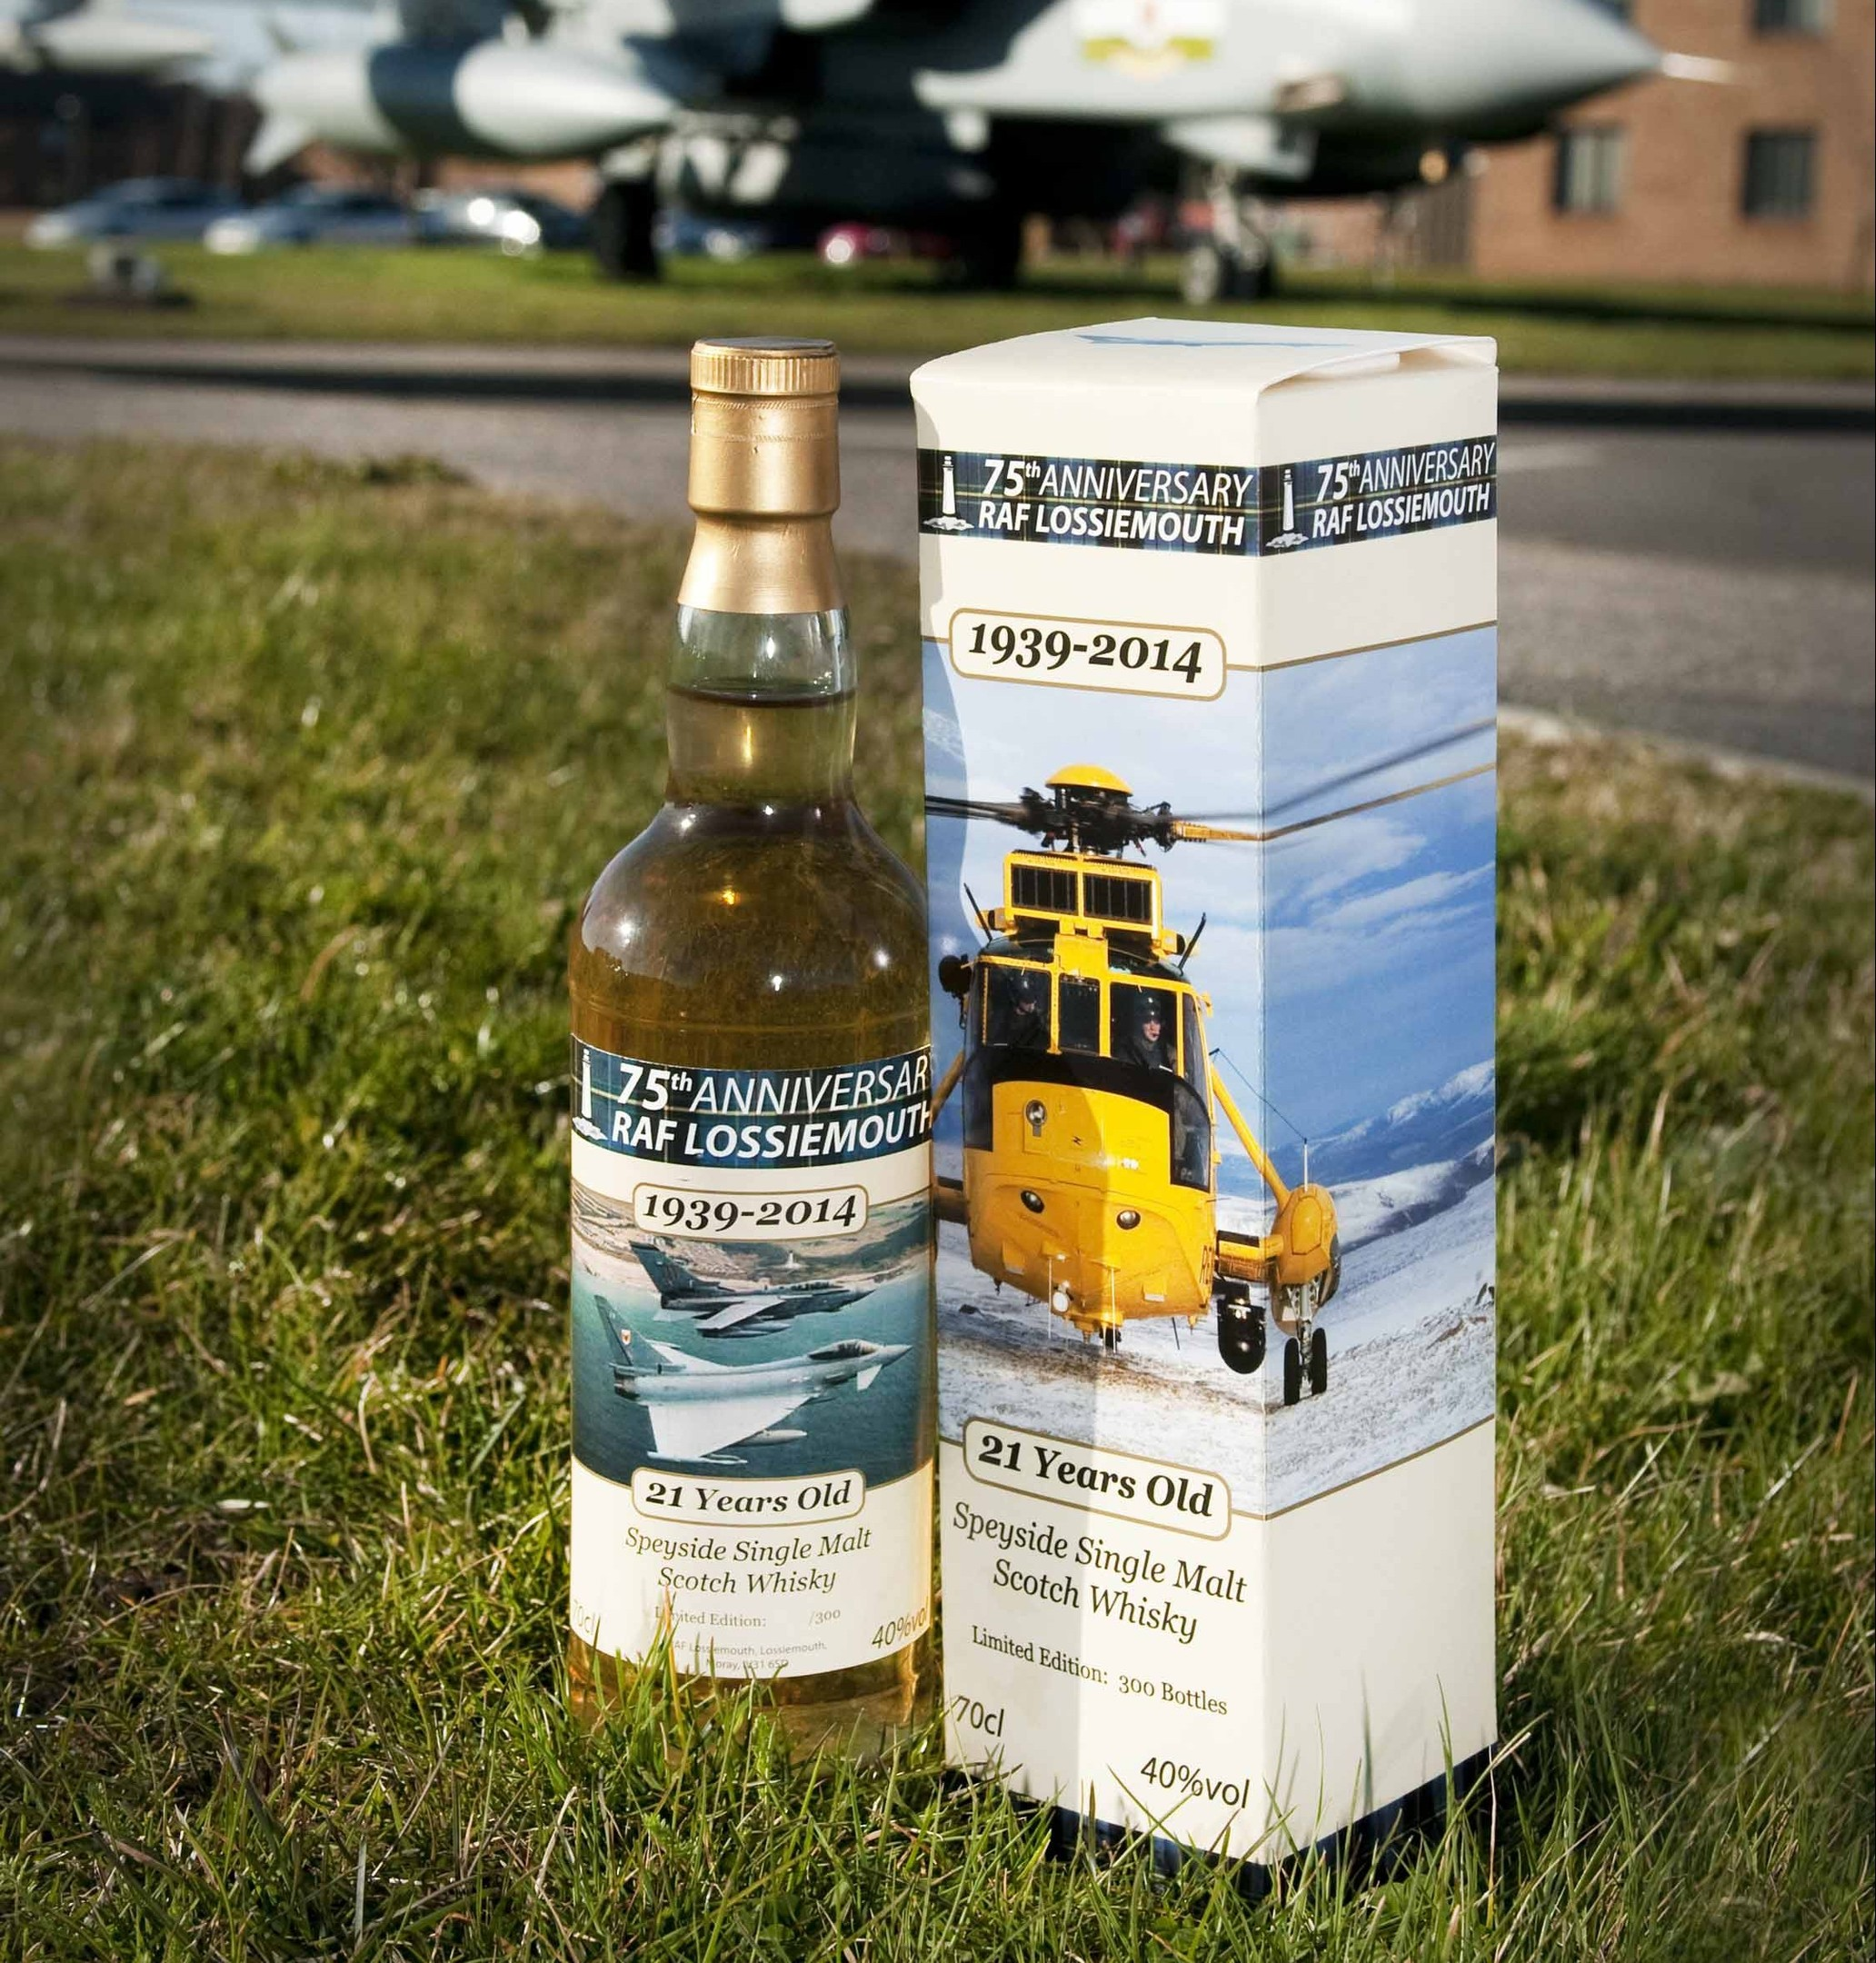 The 75th Anniversary RAF Lossiemouth Whisky